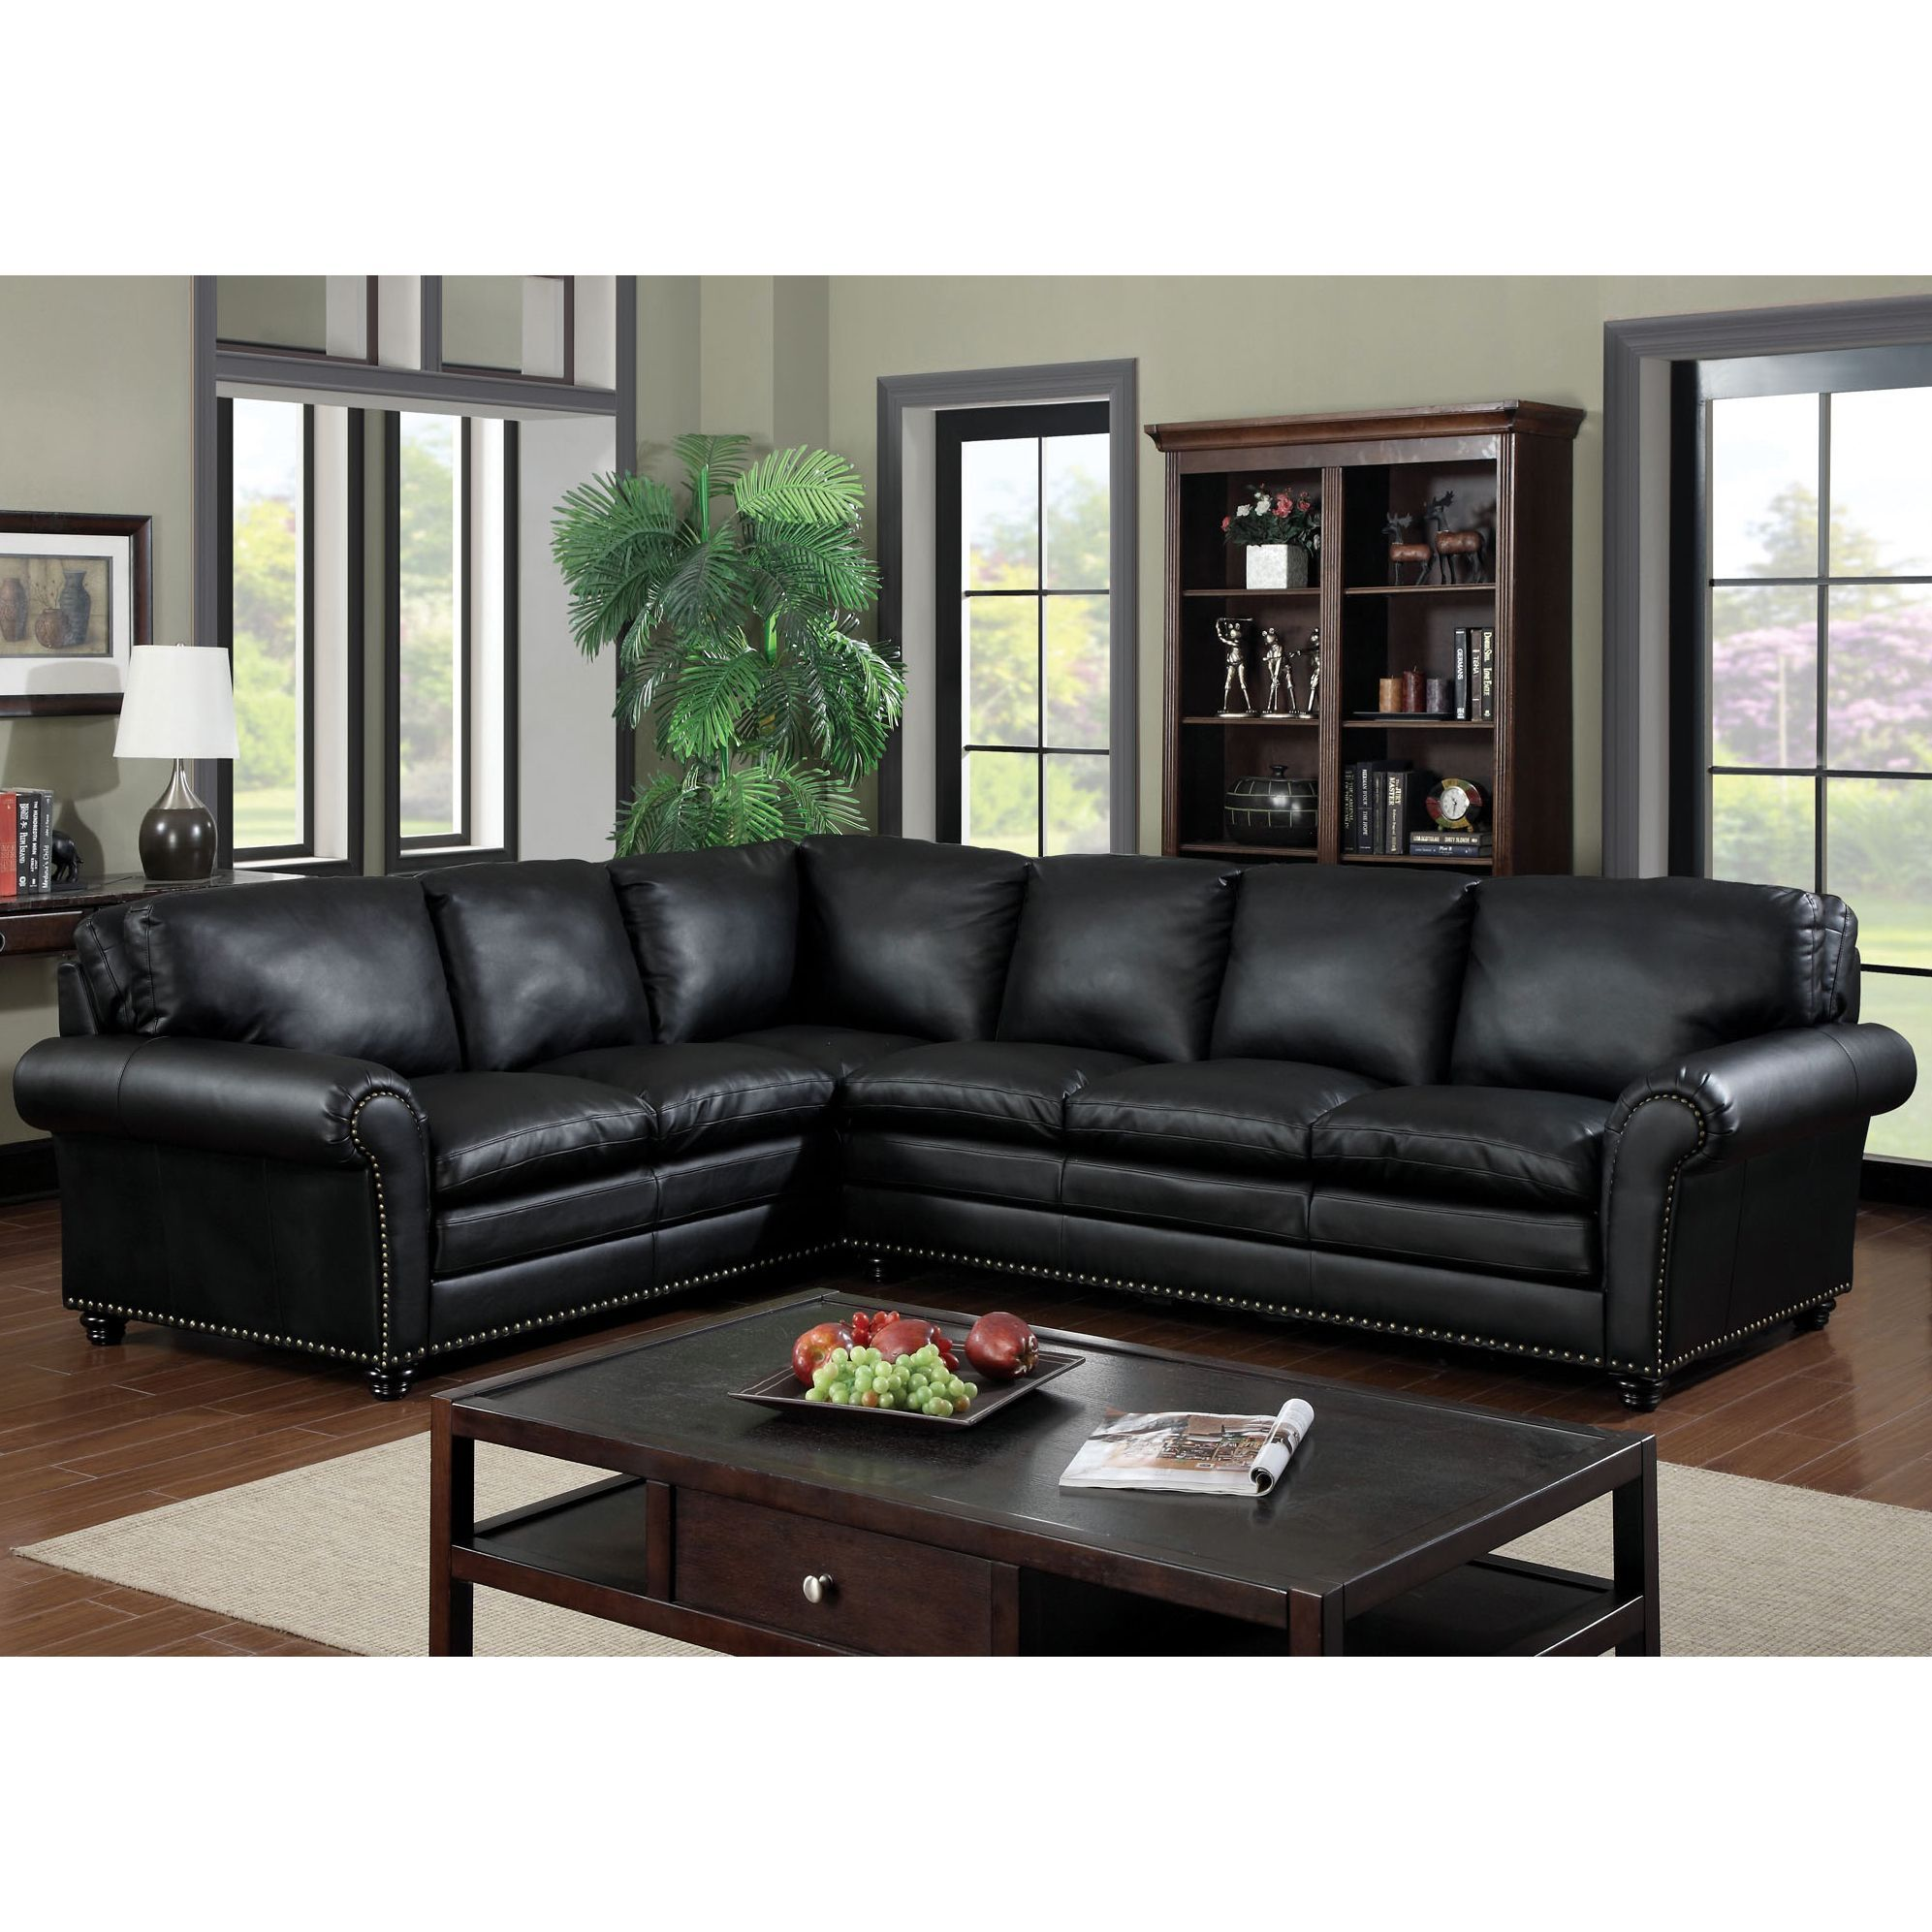 Avanti Traditional Black Sectional Sofa w Nailhead Accents 757